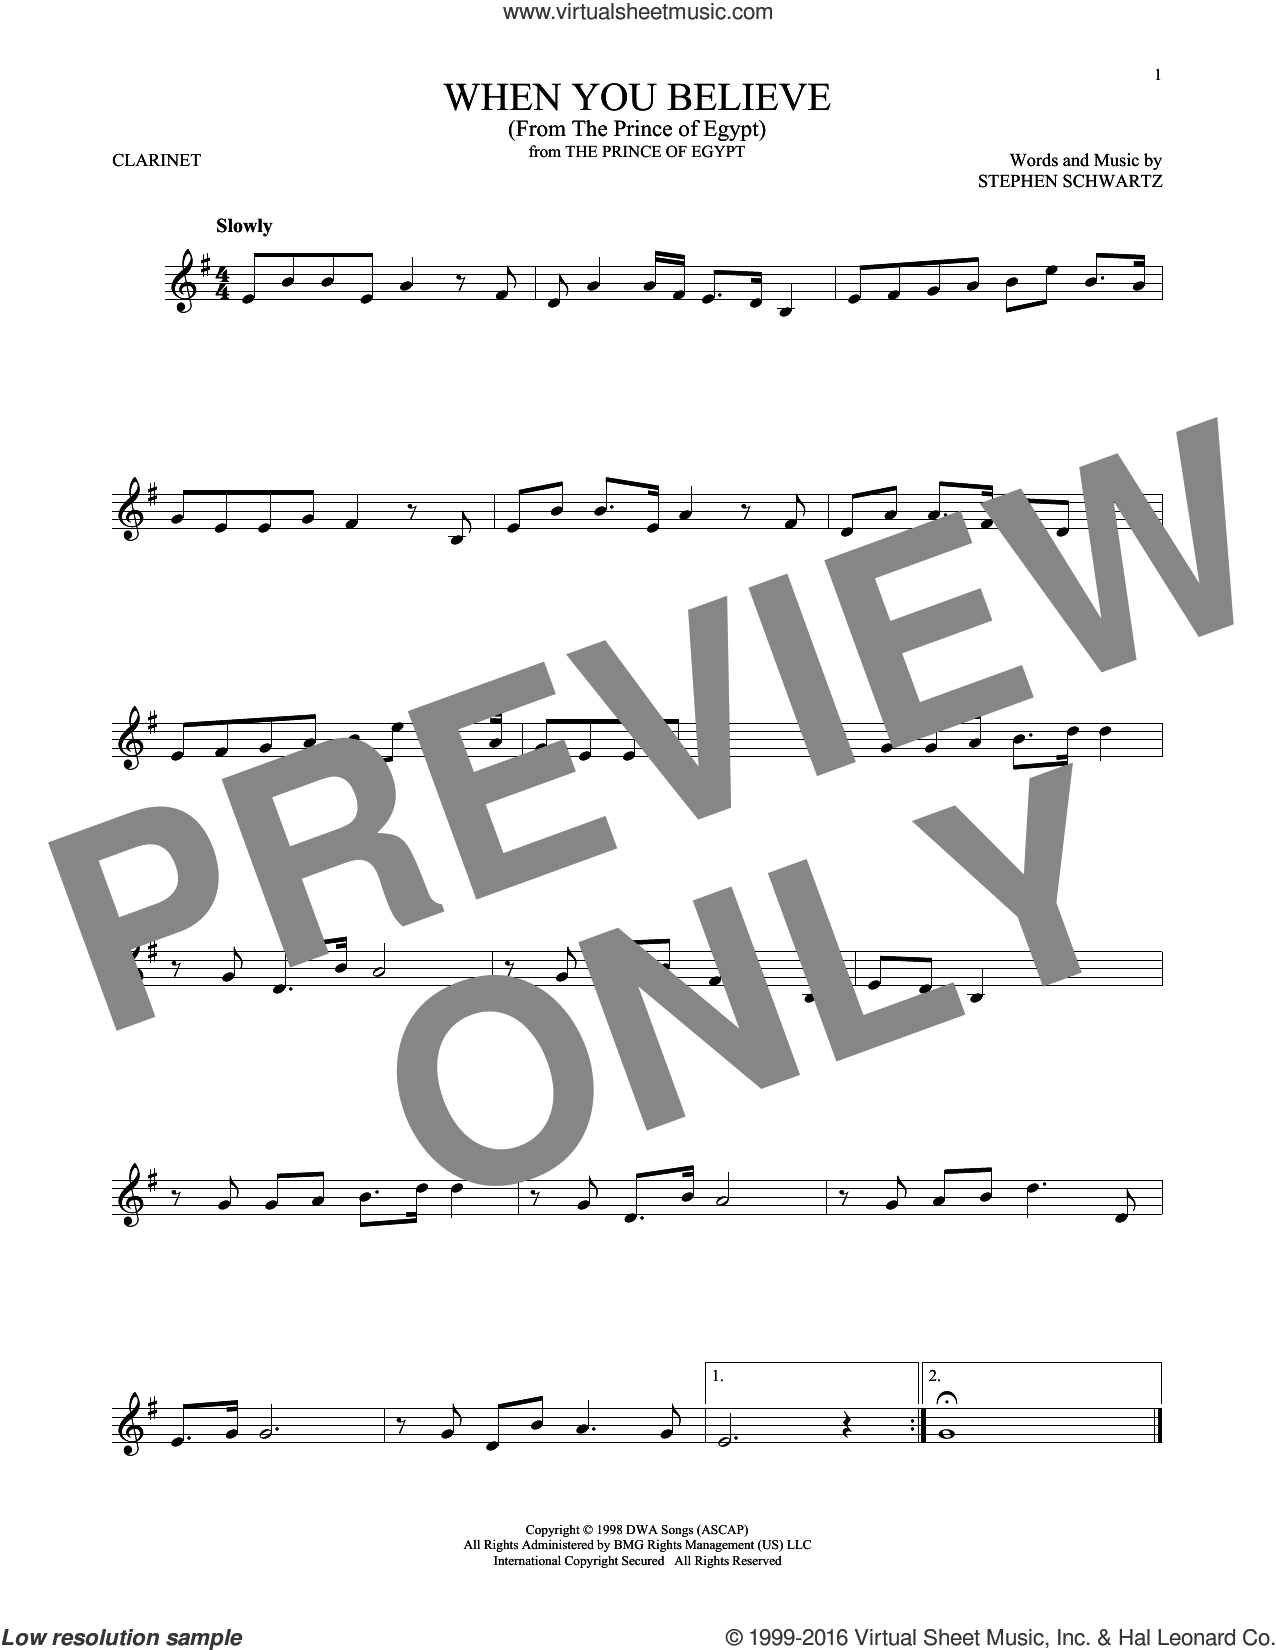 When You Believe (from The Prince Of Egypt) sheet music for clarinet solo by Whitney Houston and Mariah Carey and Stephen Schwartz, intermediate skill level